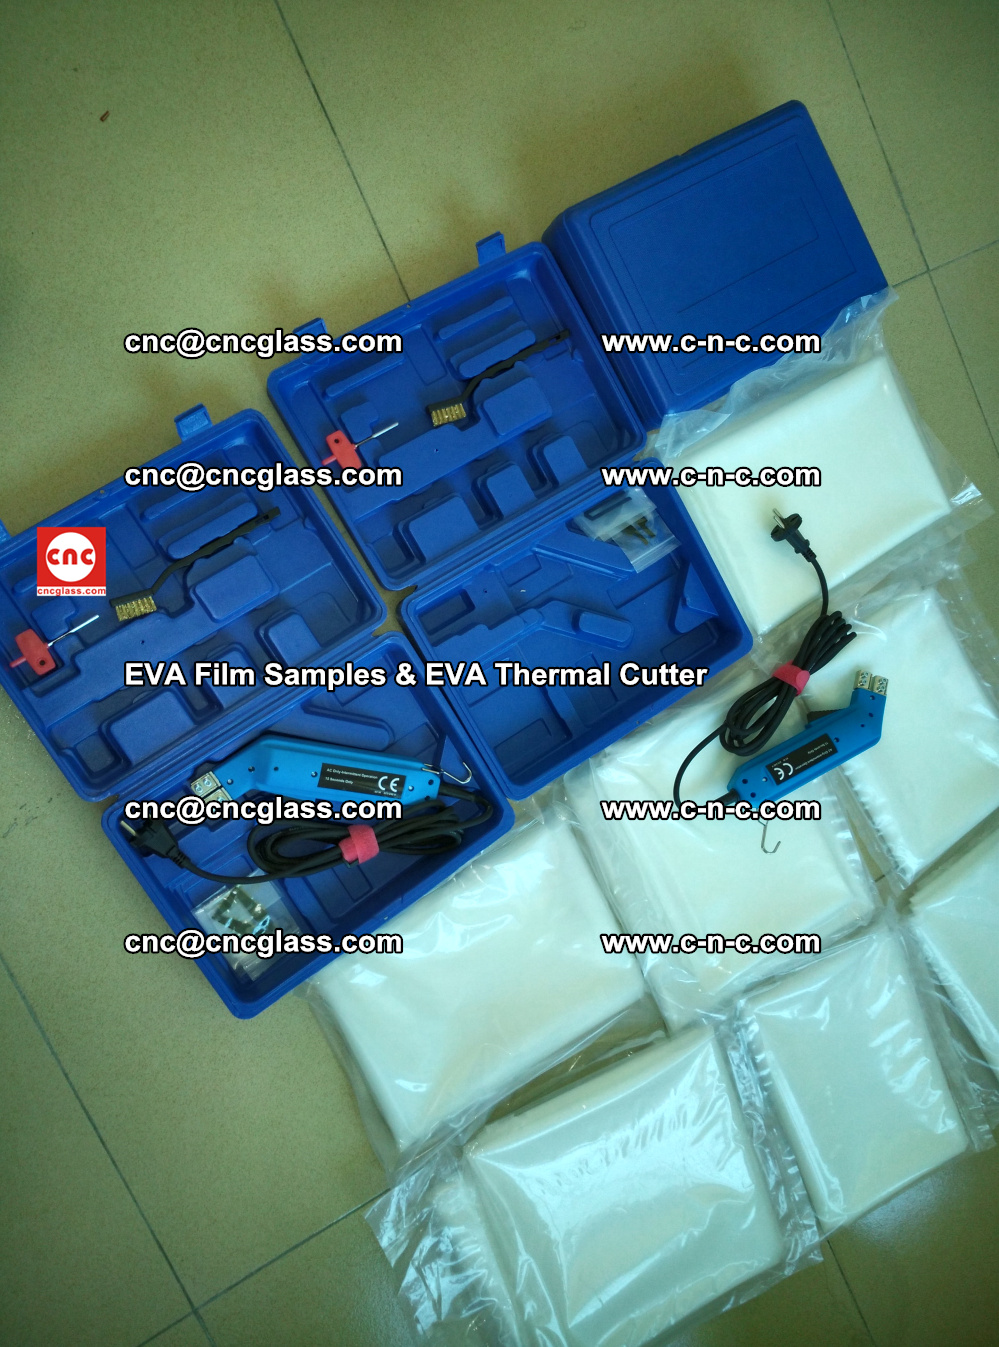 EVAFORCE SUPER CLEAR EVA Film Samples and EVA Thermal Cutter (17)